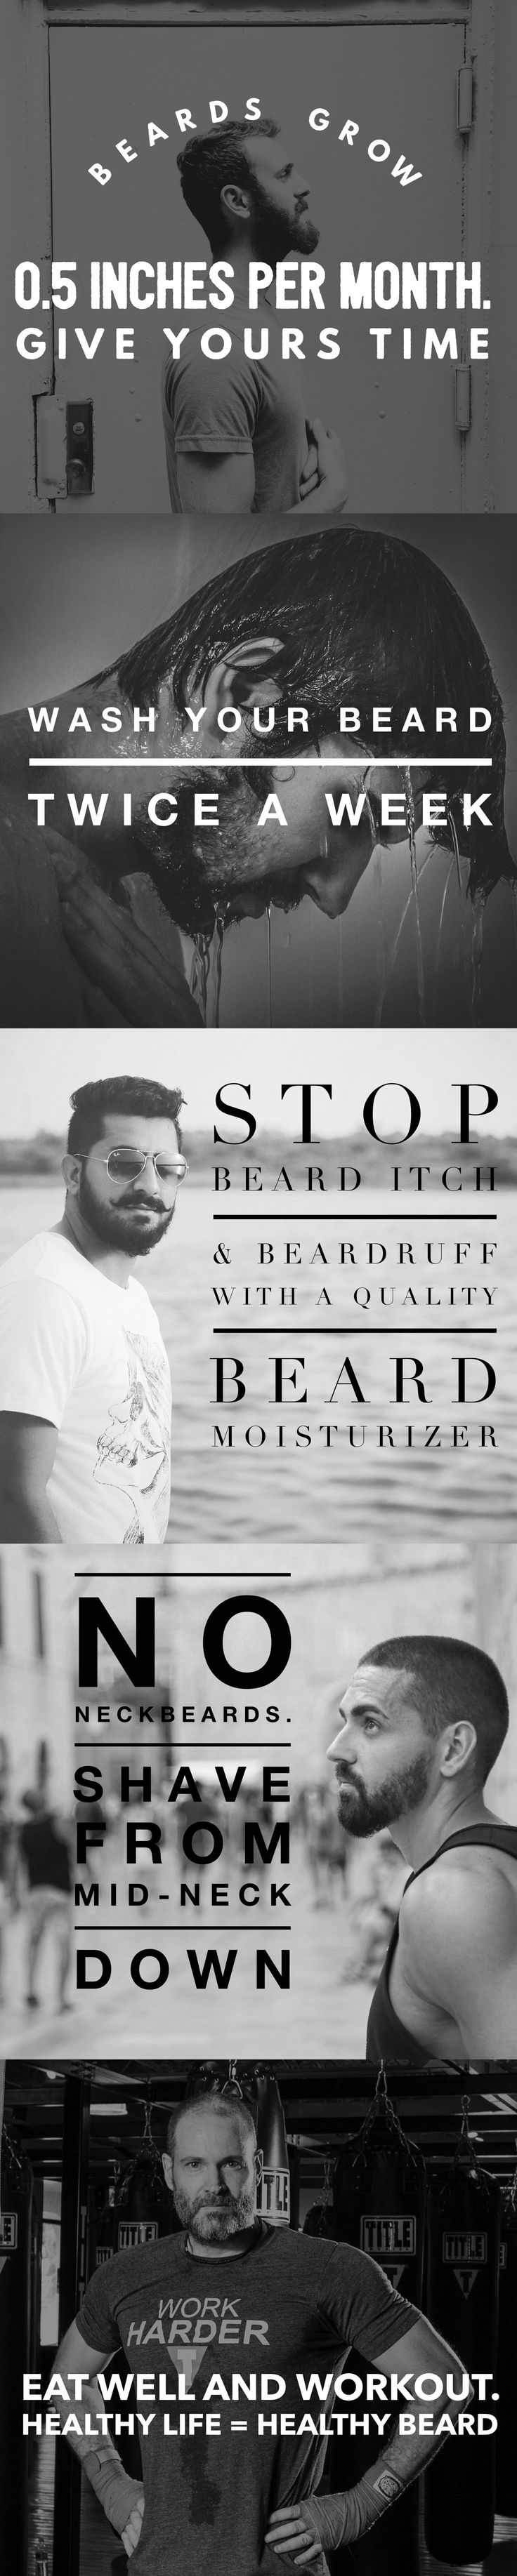 Beards aren't going away anytime soon. A record number of men are embracing the beard and ditching those sadistic razors. Read on for our top five tips for growing and maintaining your best fall beard. www.stubbleandstache.com